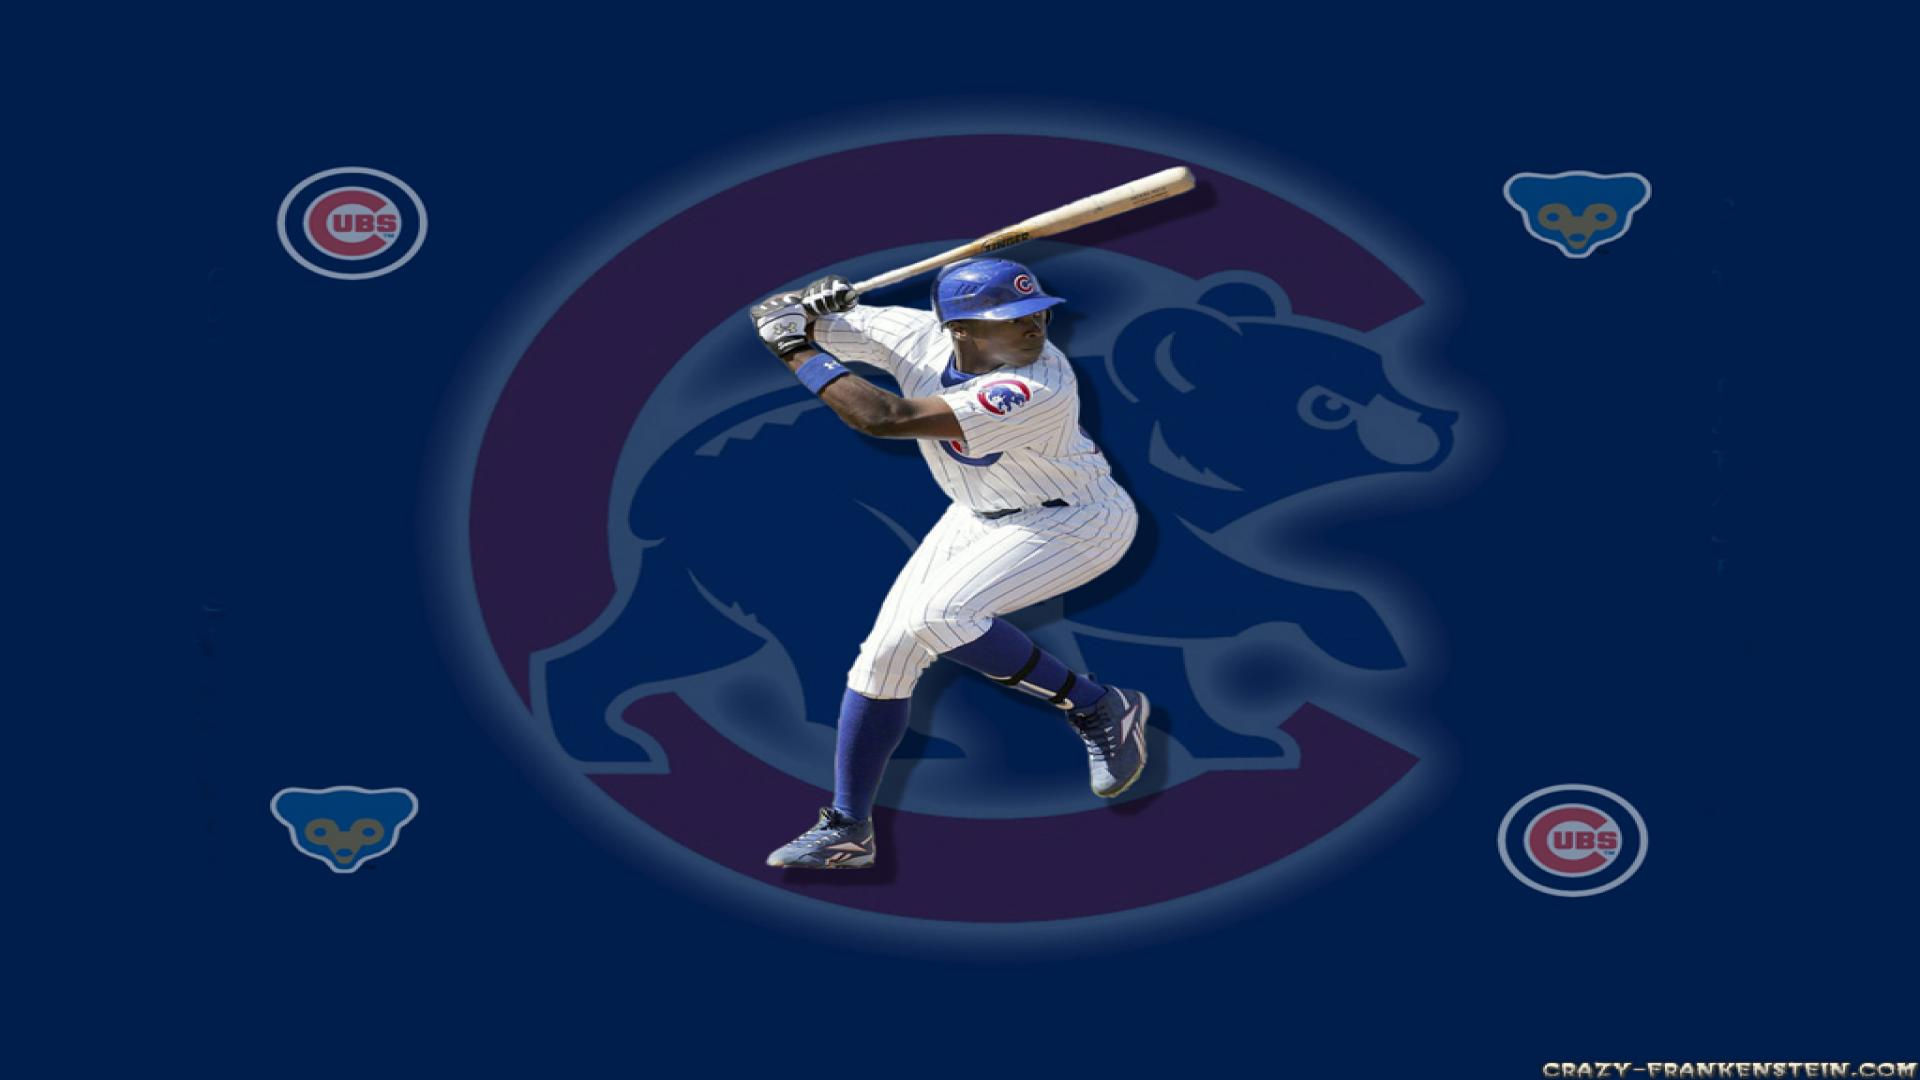 CHICAGO CUBS mlb baseball 21 wallpaper 1920x1080 232527 1920x1080